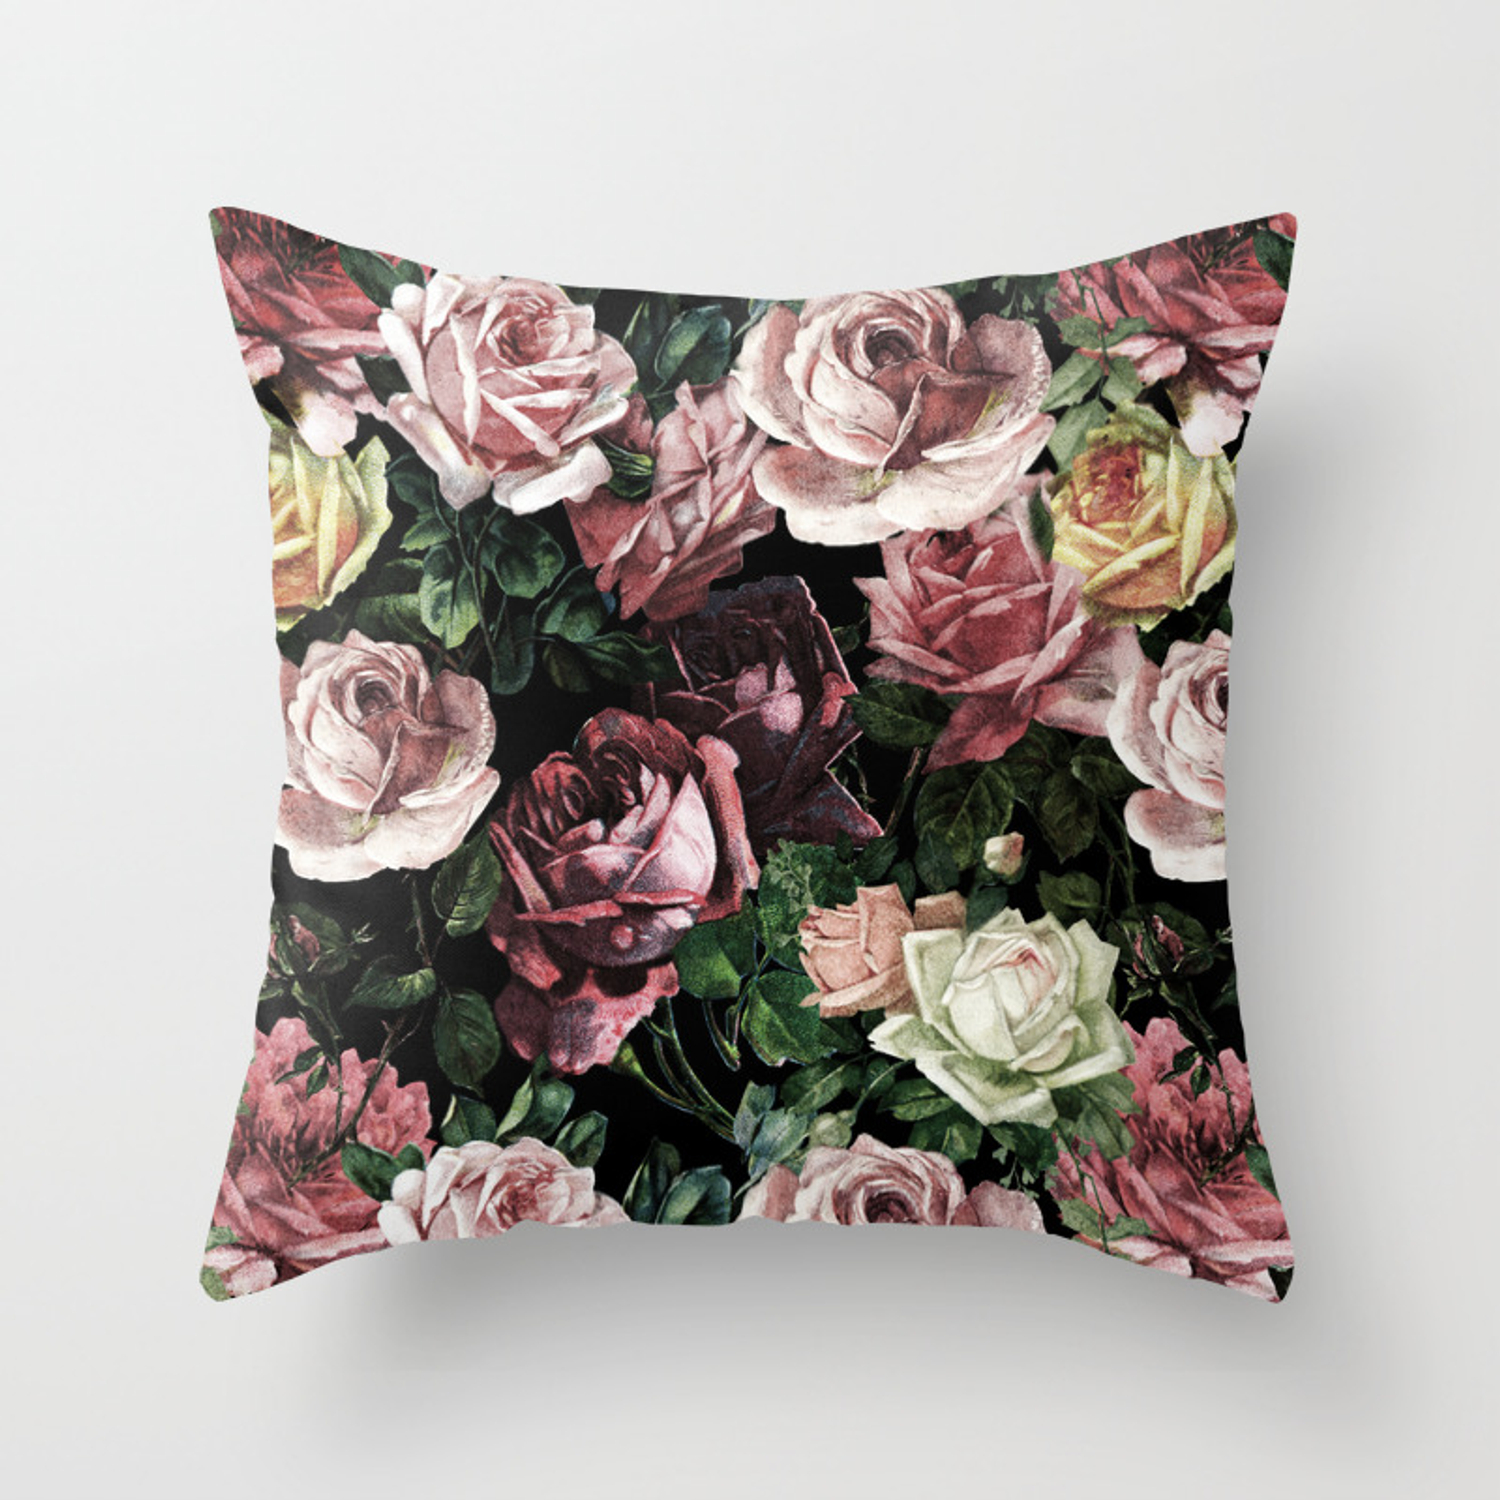 Vintage Shabby Chic Dark Retro Floral Roses Pattern Throw Pillow By Vintage Love Society6